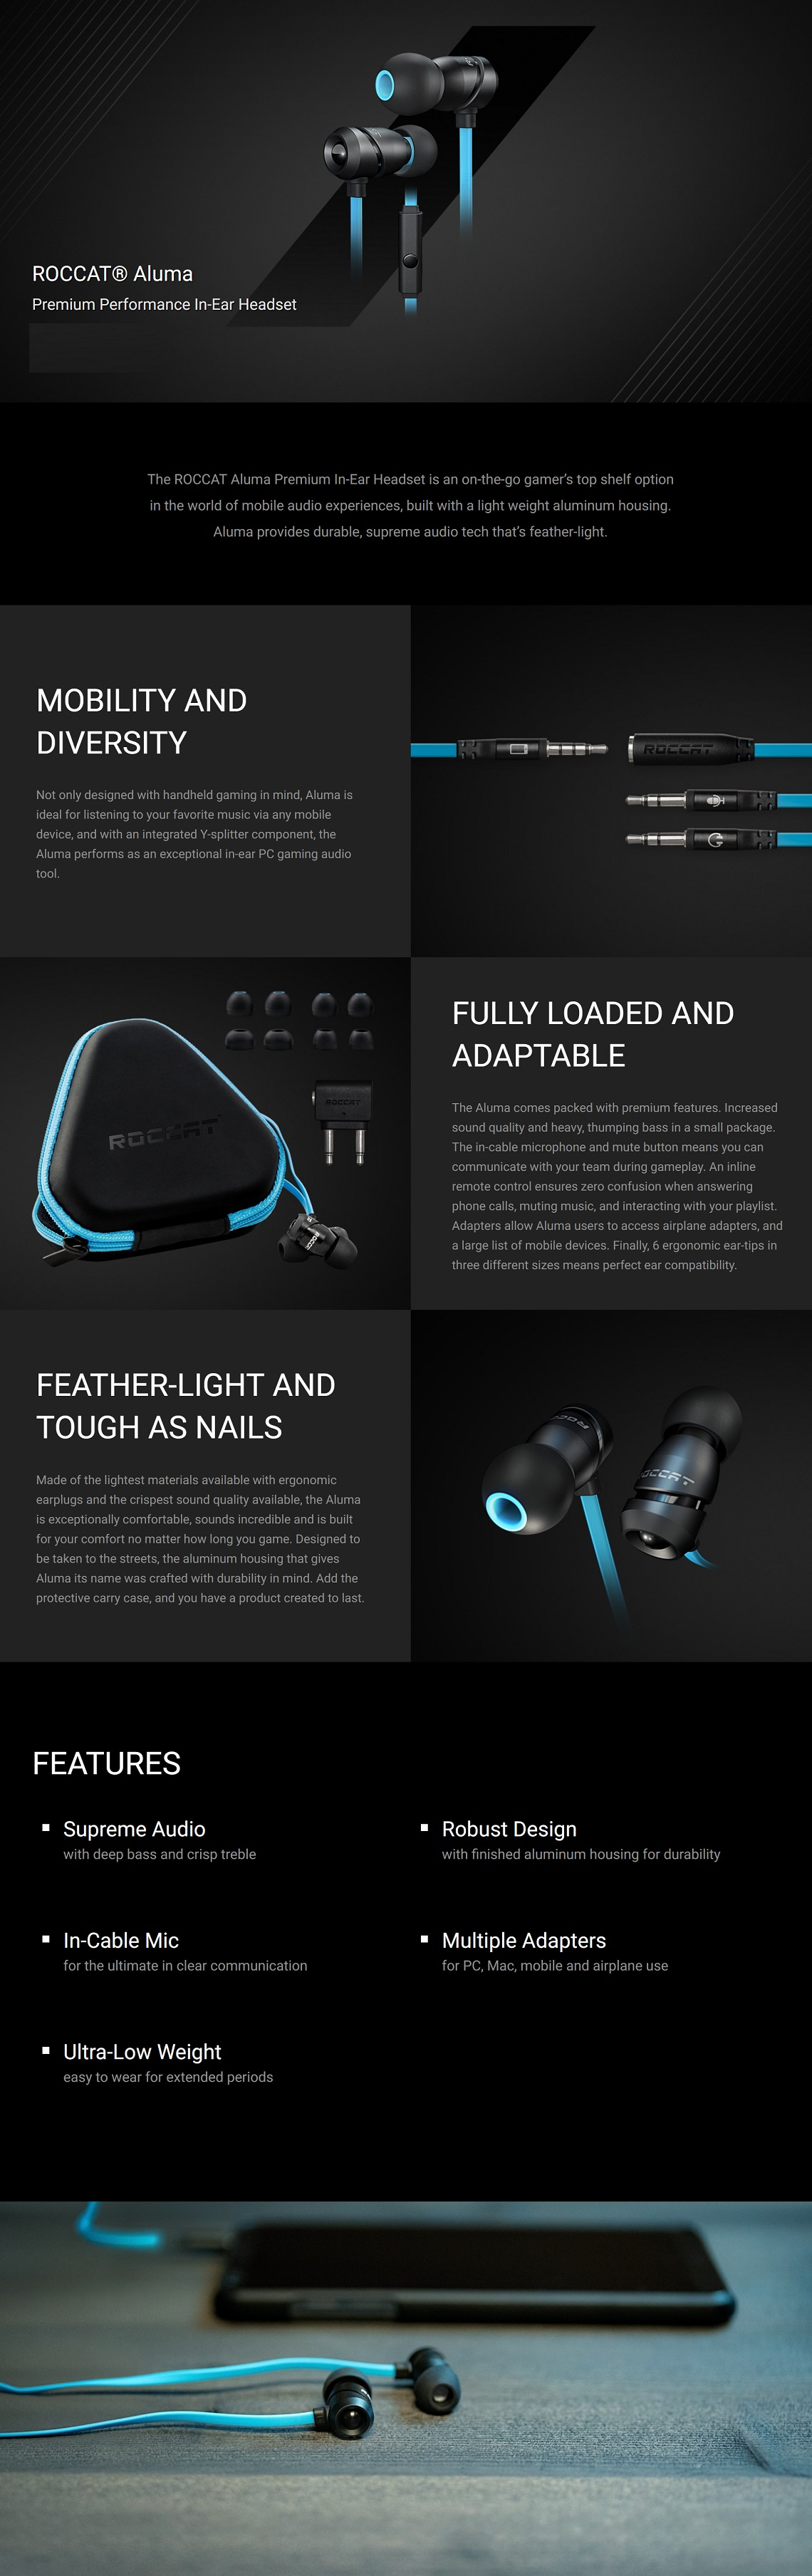 Roccat Aluma Premium Performance In-Ear Headset Earphone Robust Design In-Cable Mic